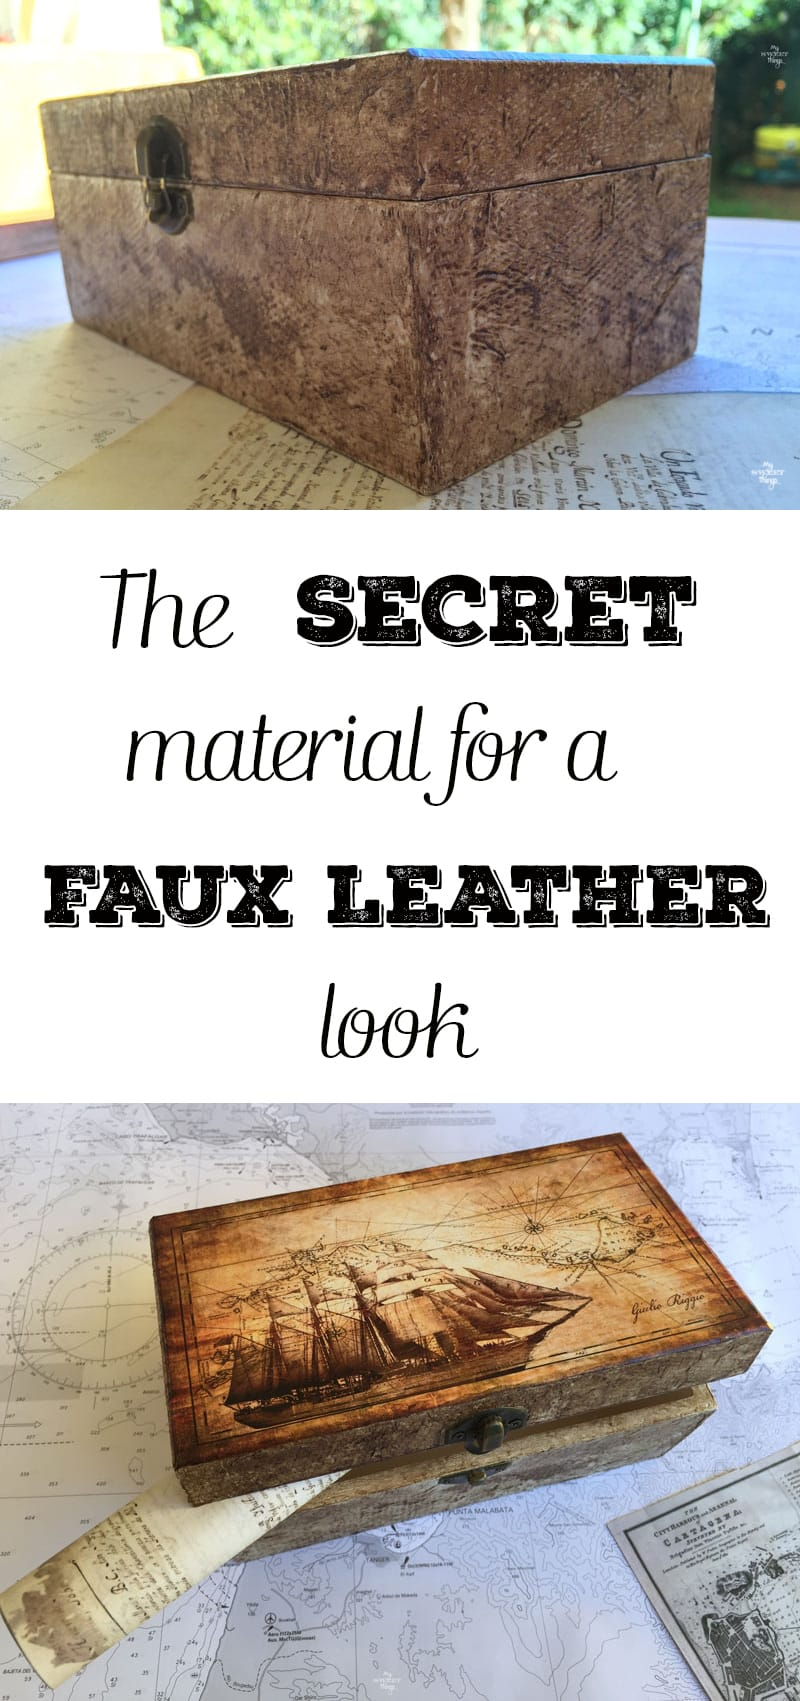 The secret material for a faux leather look, using some glue and dark wax too · My Sweet Things